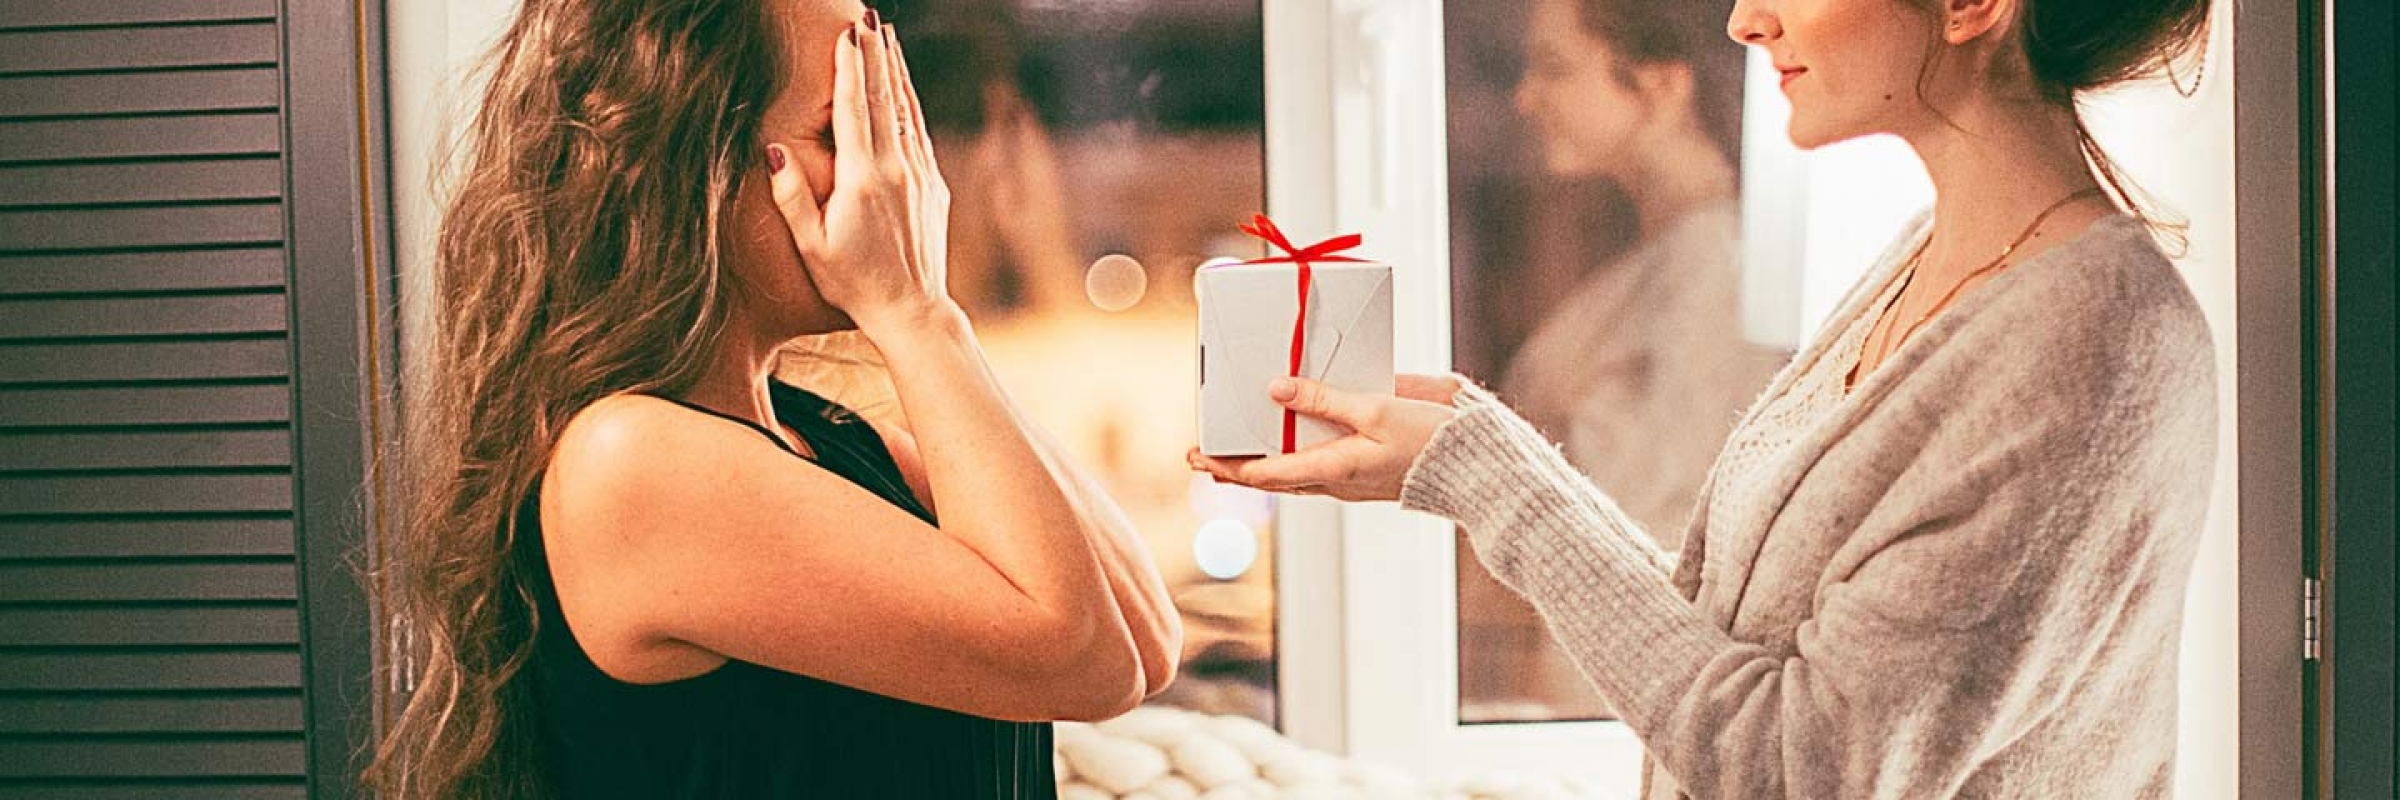 How to Give the Gift of Travel 2 women exchanging present wrapped in red bow